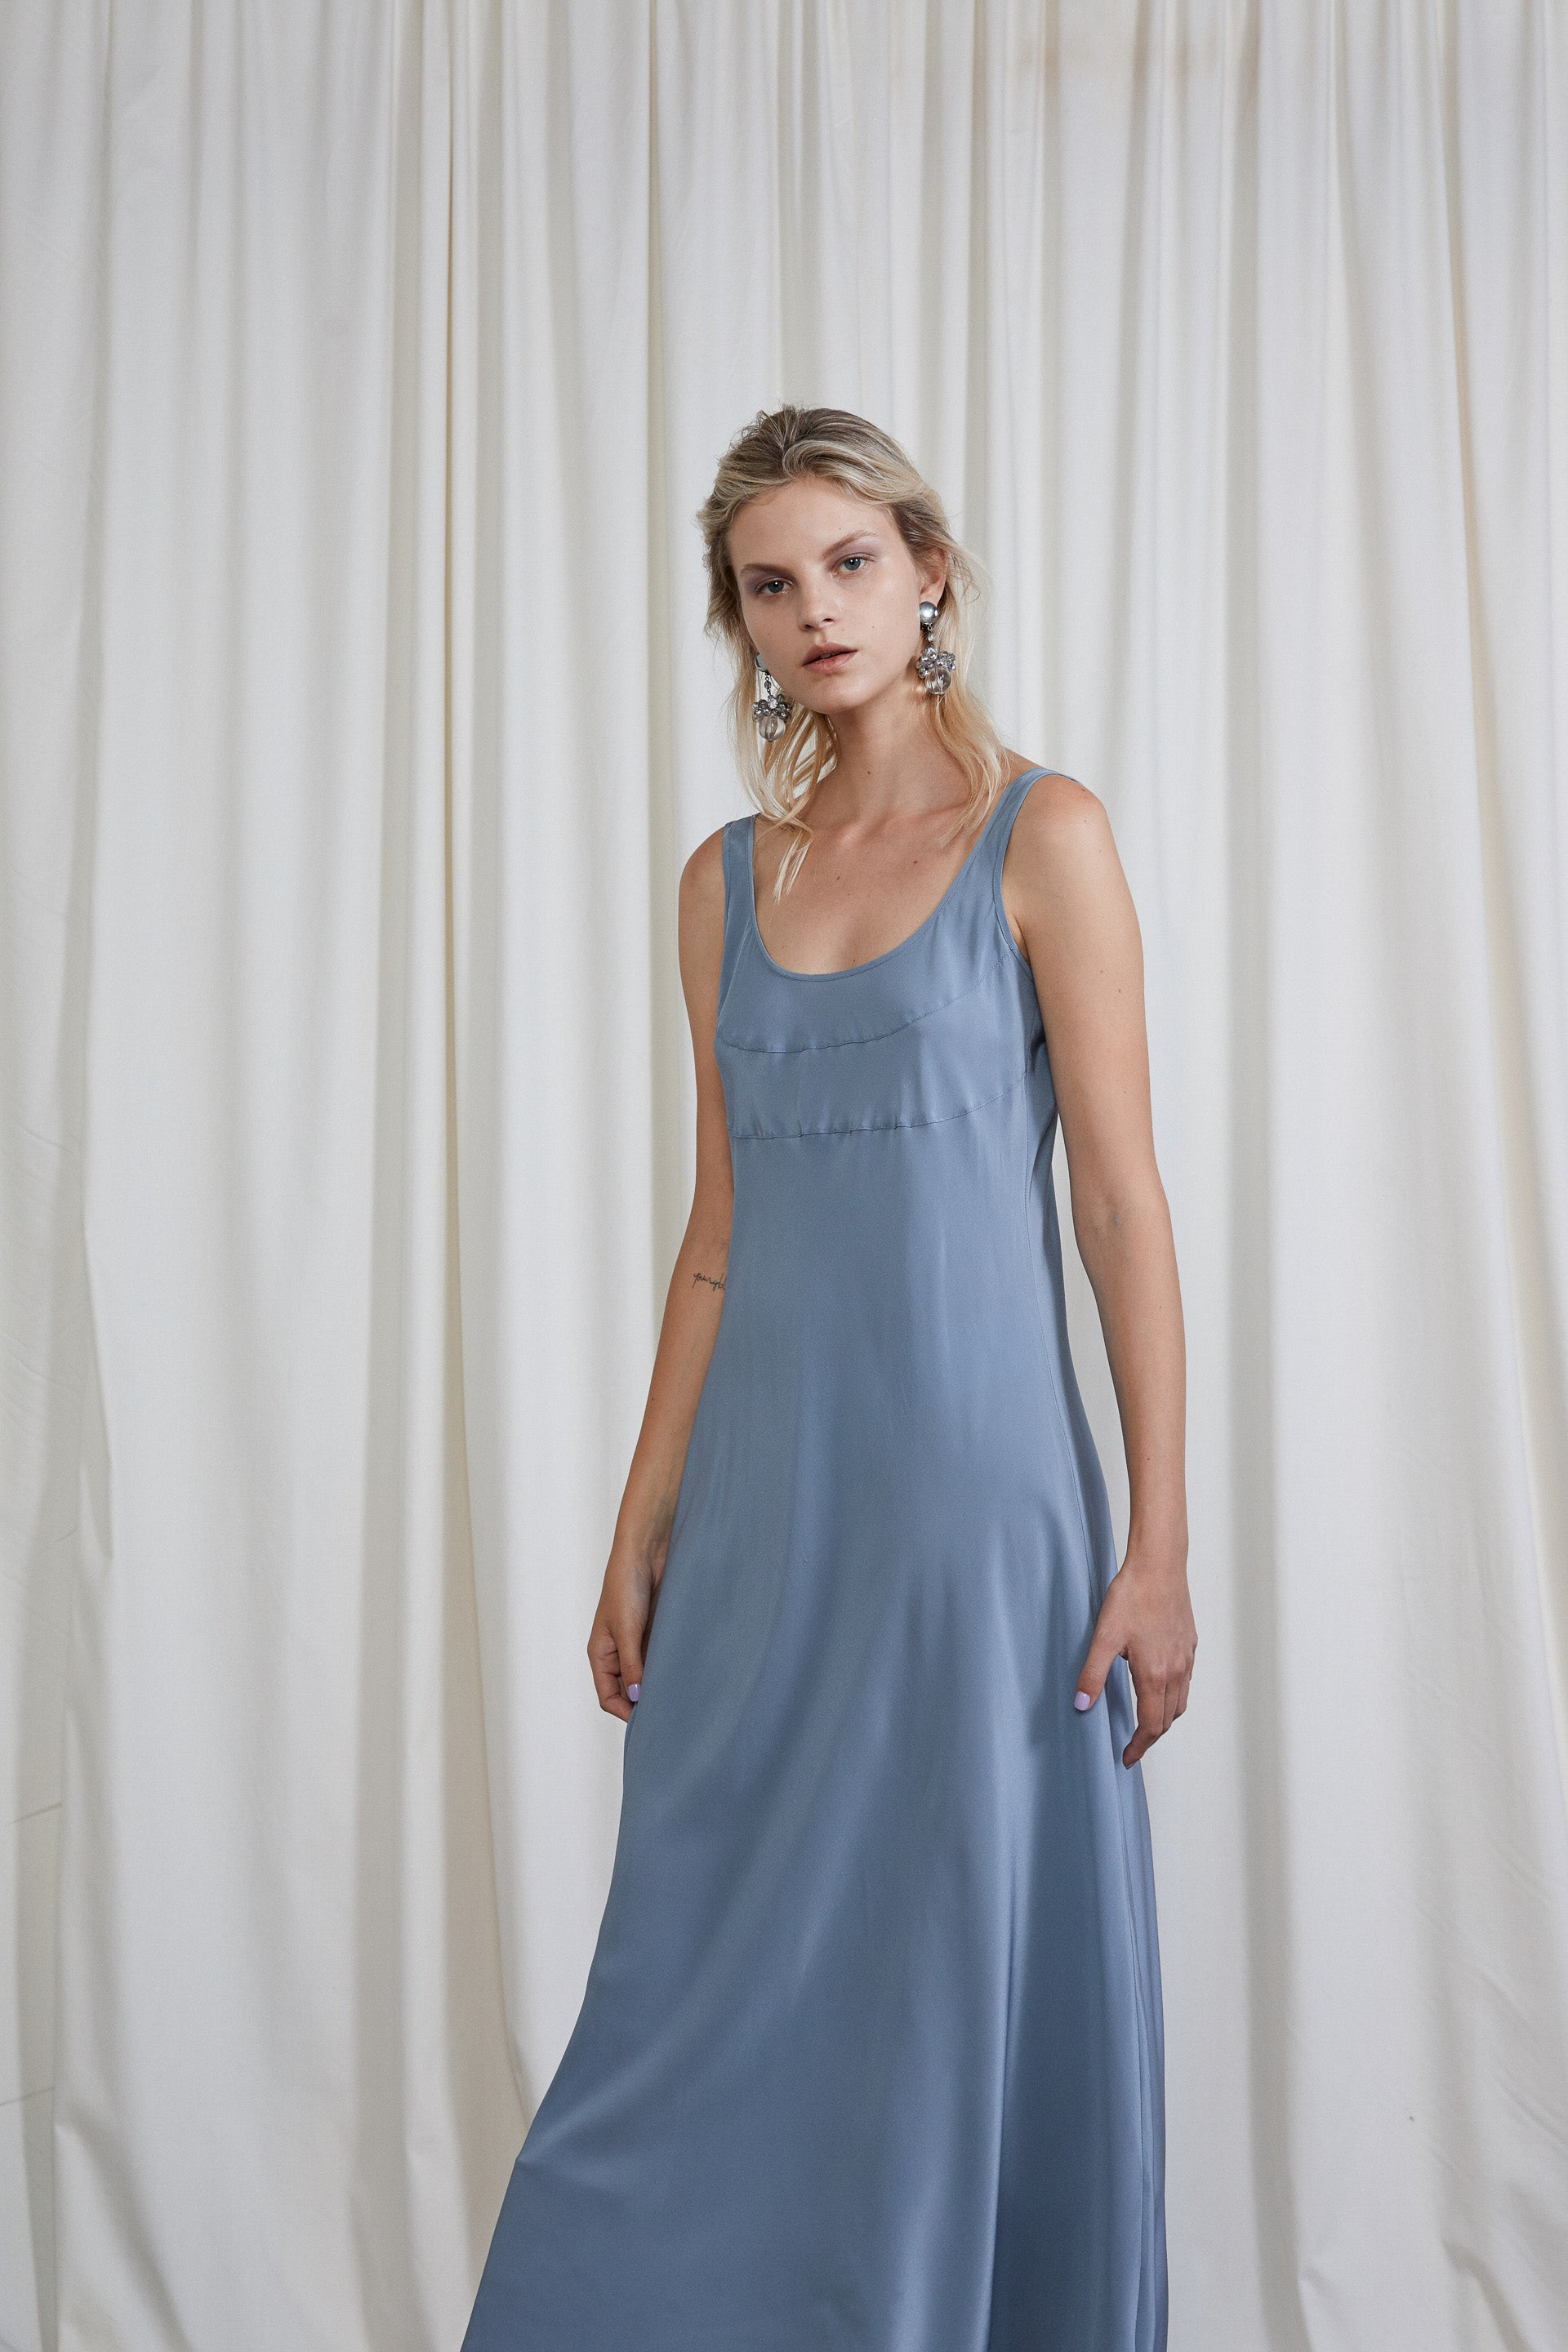 4th Wave Dress - Steel Silk Crepe